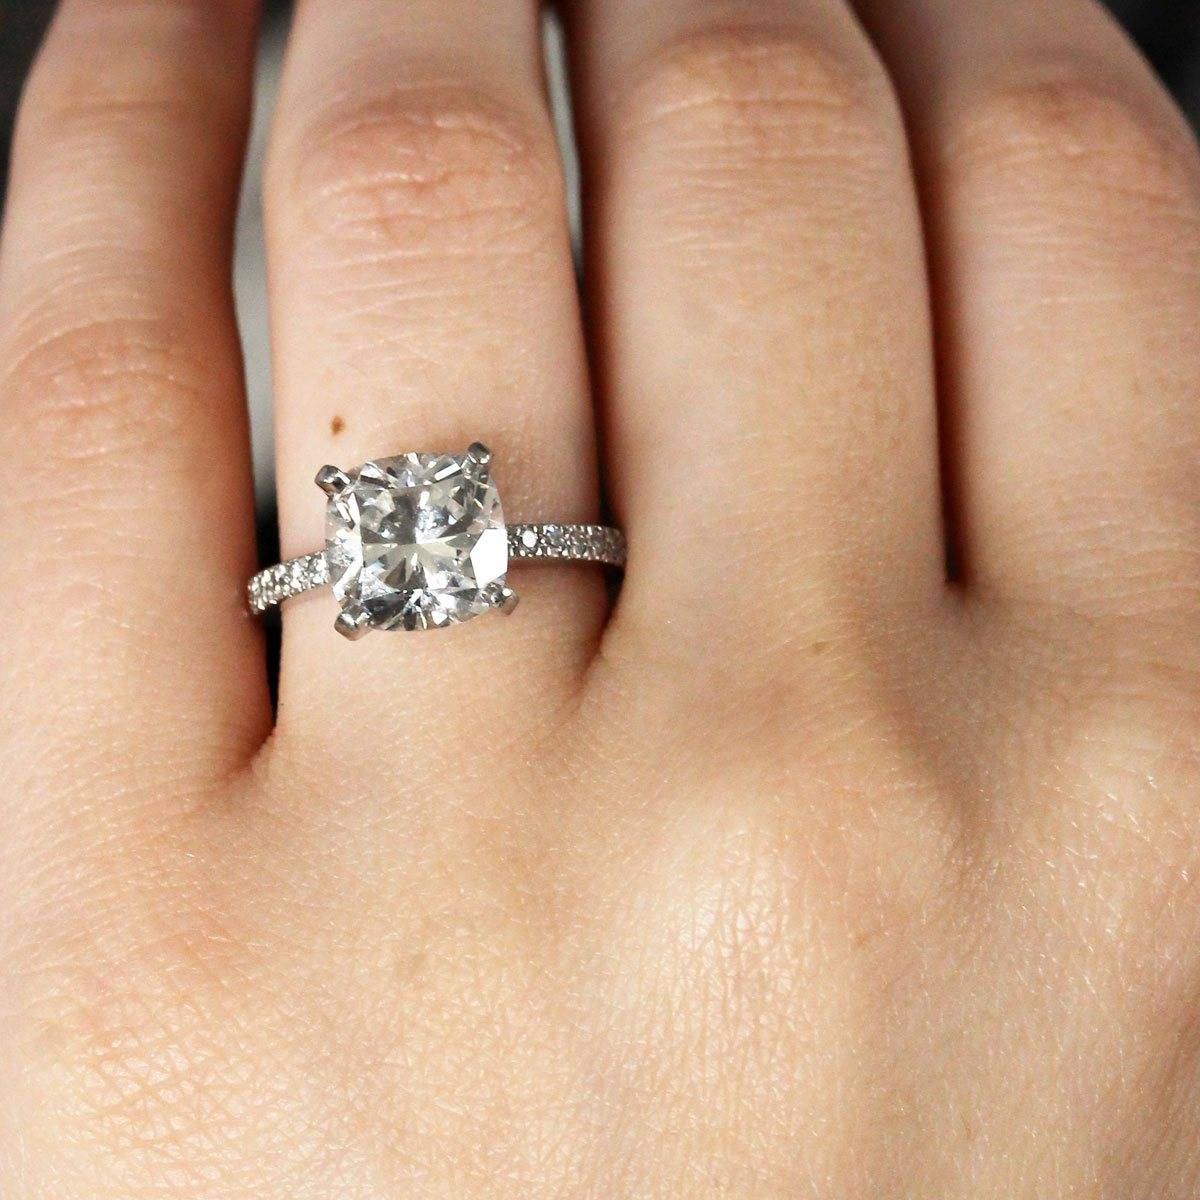 It's hard to believe, but this 3 carat cushion cut Tiffany engagement ring is an estate jewelry piece too! And is $10,000 less than retail because of it.